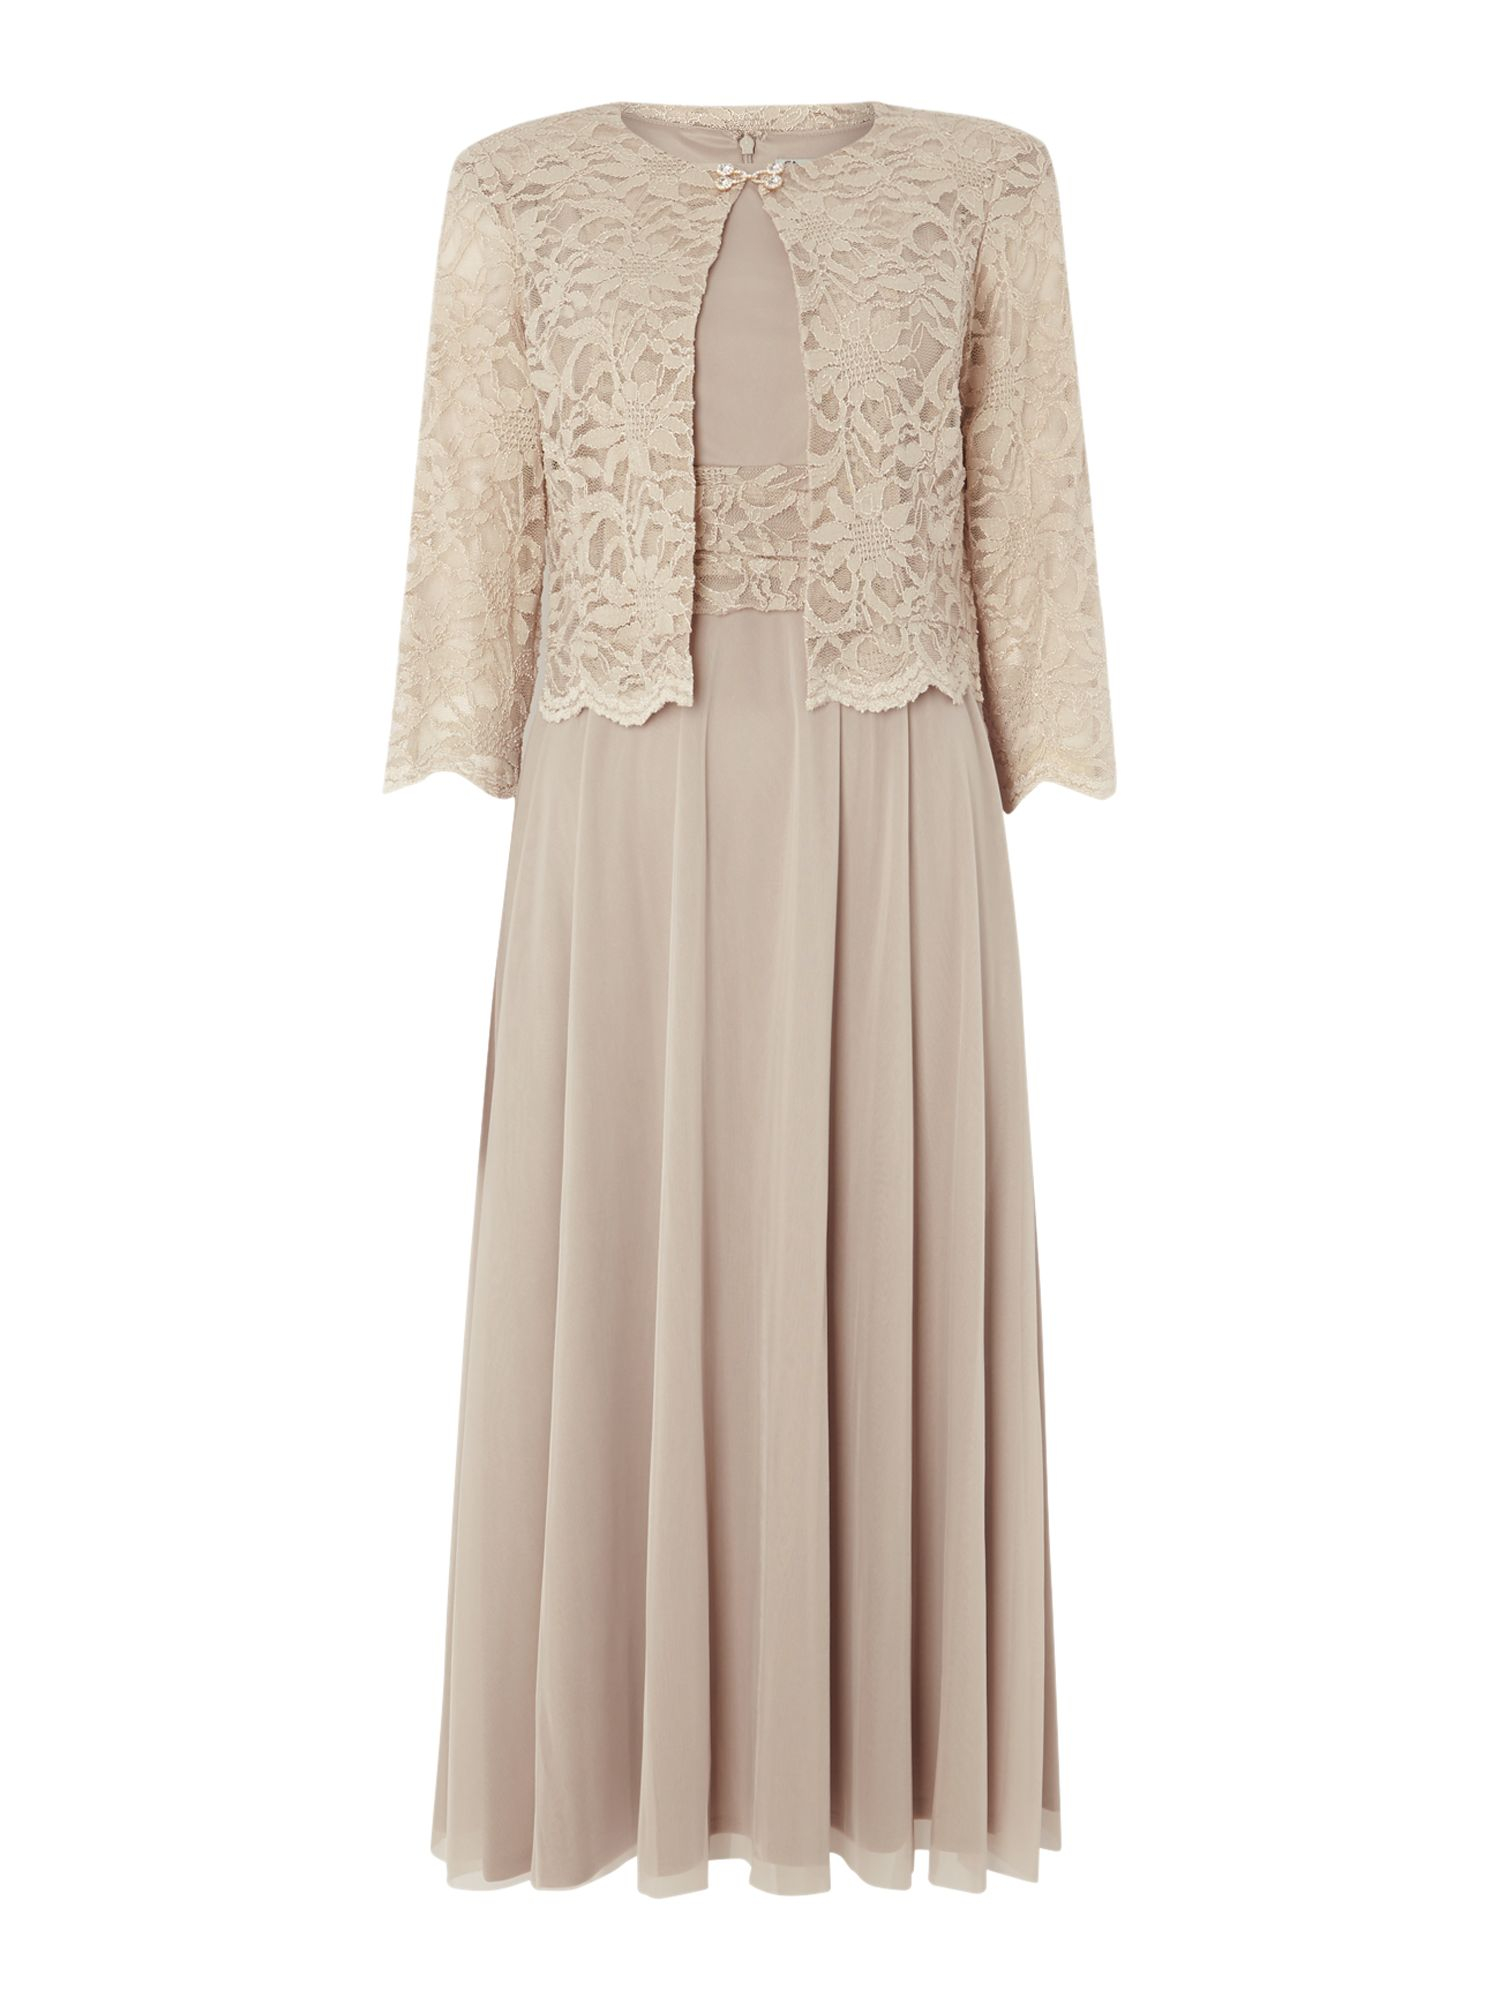 Eliza J Mesh And Lace Dress And Jacket In Beige Champagne